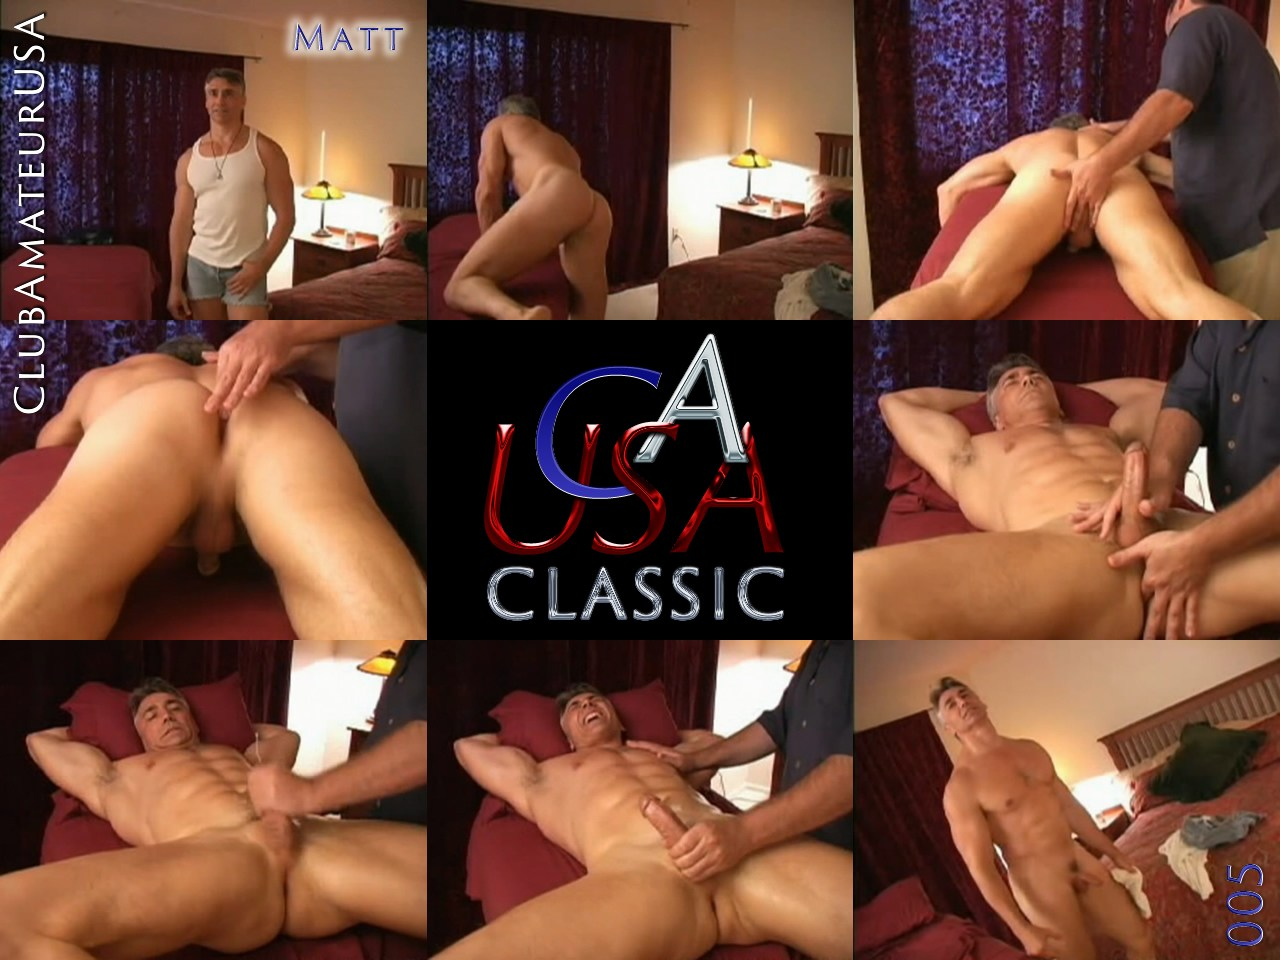 Download or Stream Classic CAUSA 005 Matt - Click Here Now